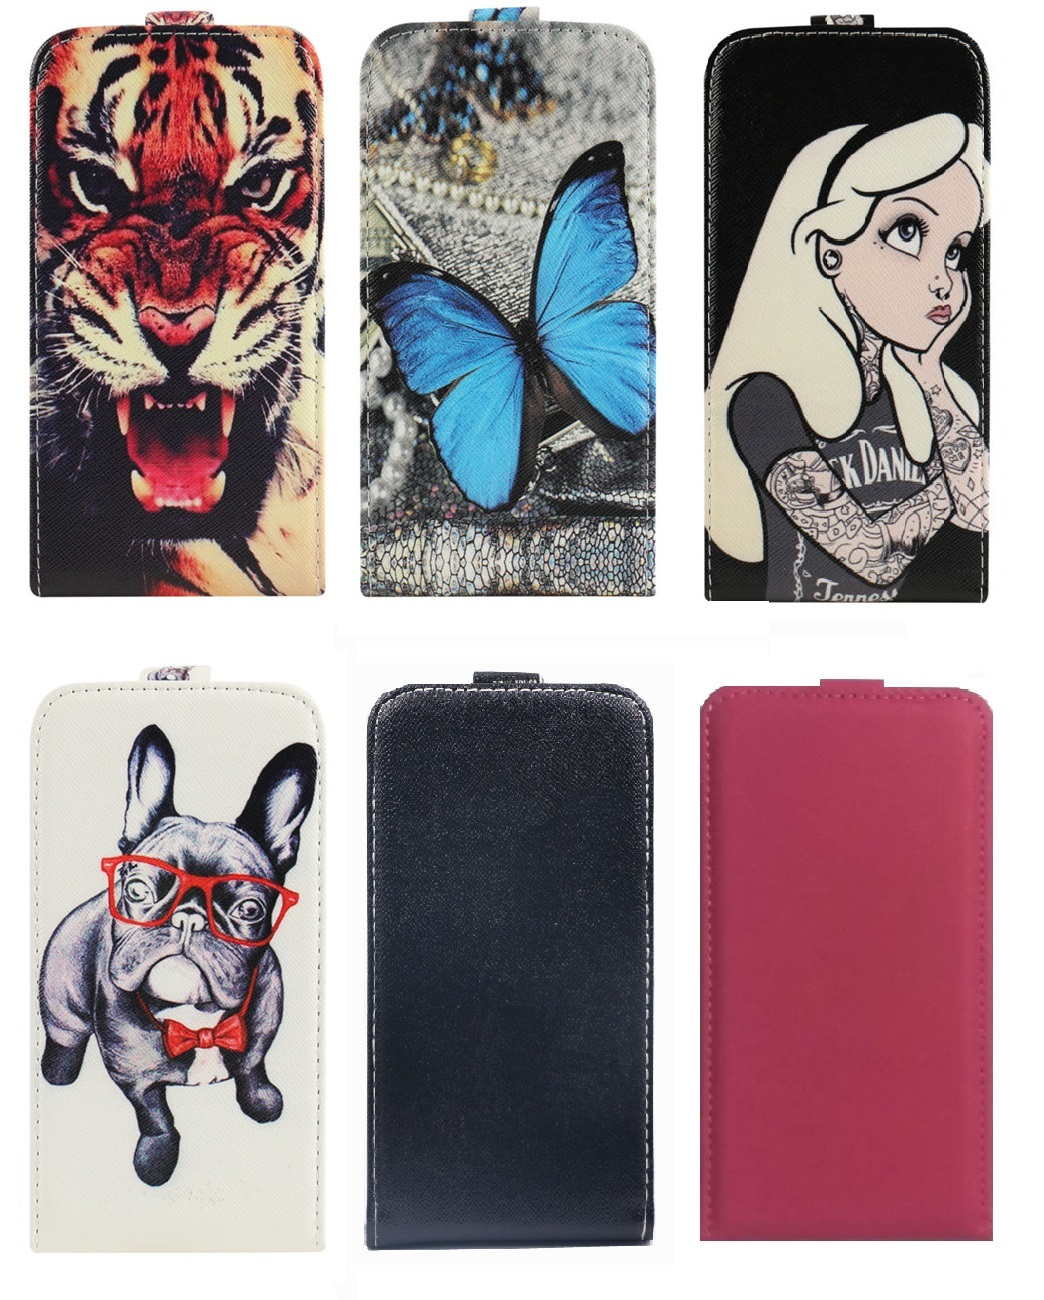 Yooyour Case cover Skin Case Cover For <font><b>Philips</b></font> S326 X586 S337 S396 S616 Xenium V377 V526 <font><b>V787</b></font> S388 S398 W3509 image